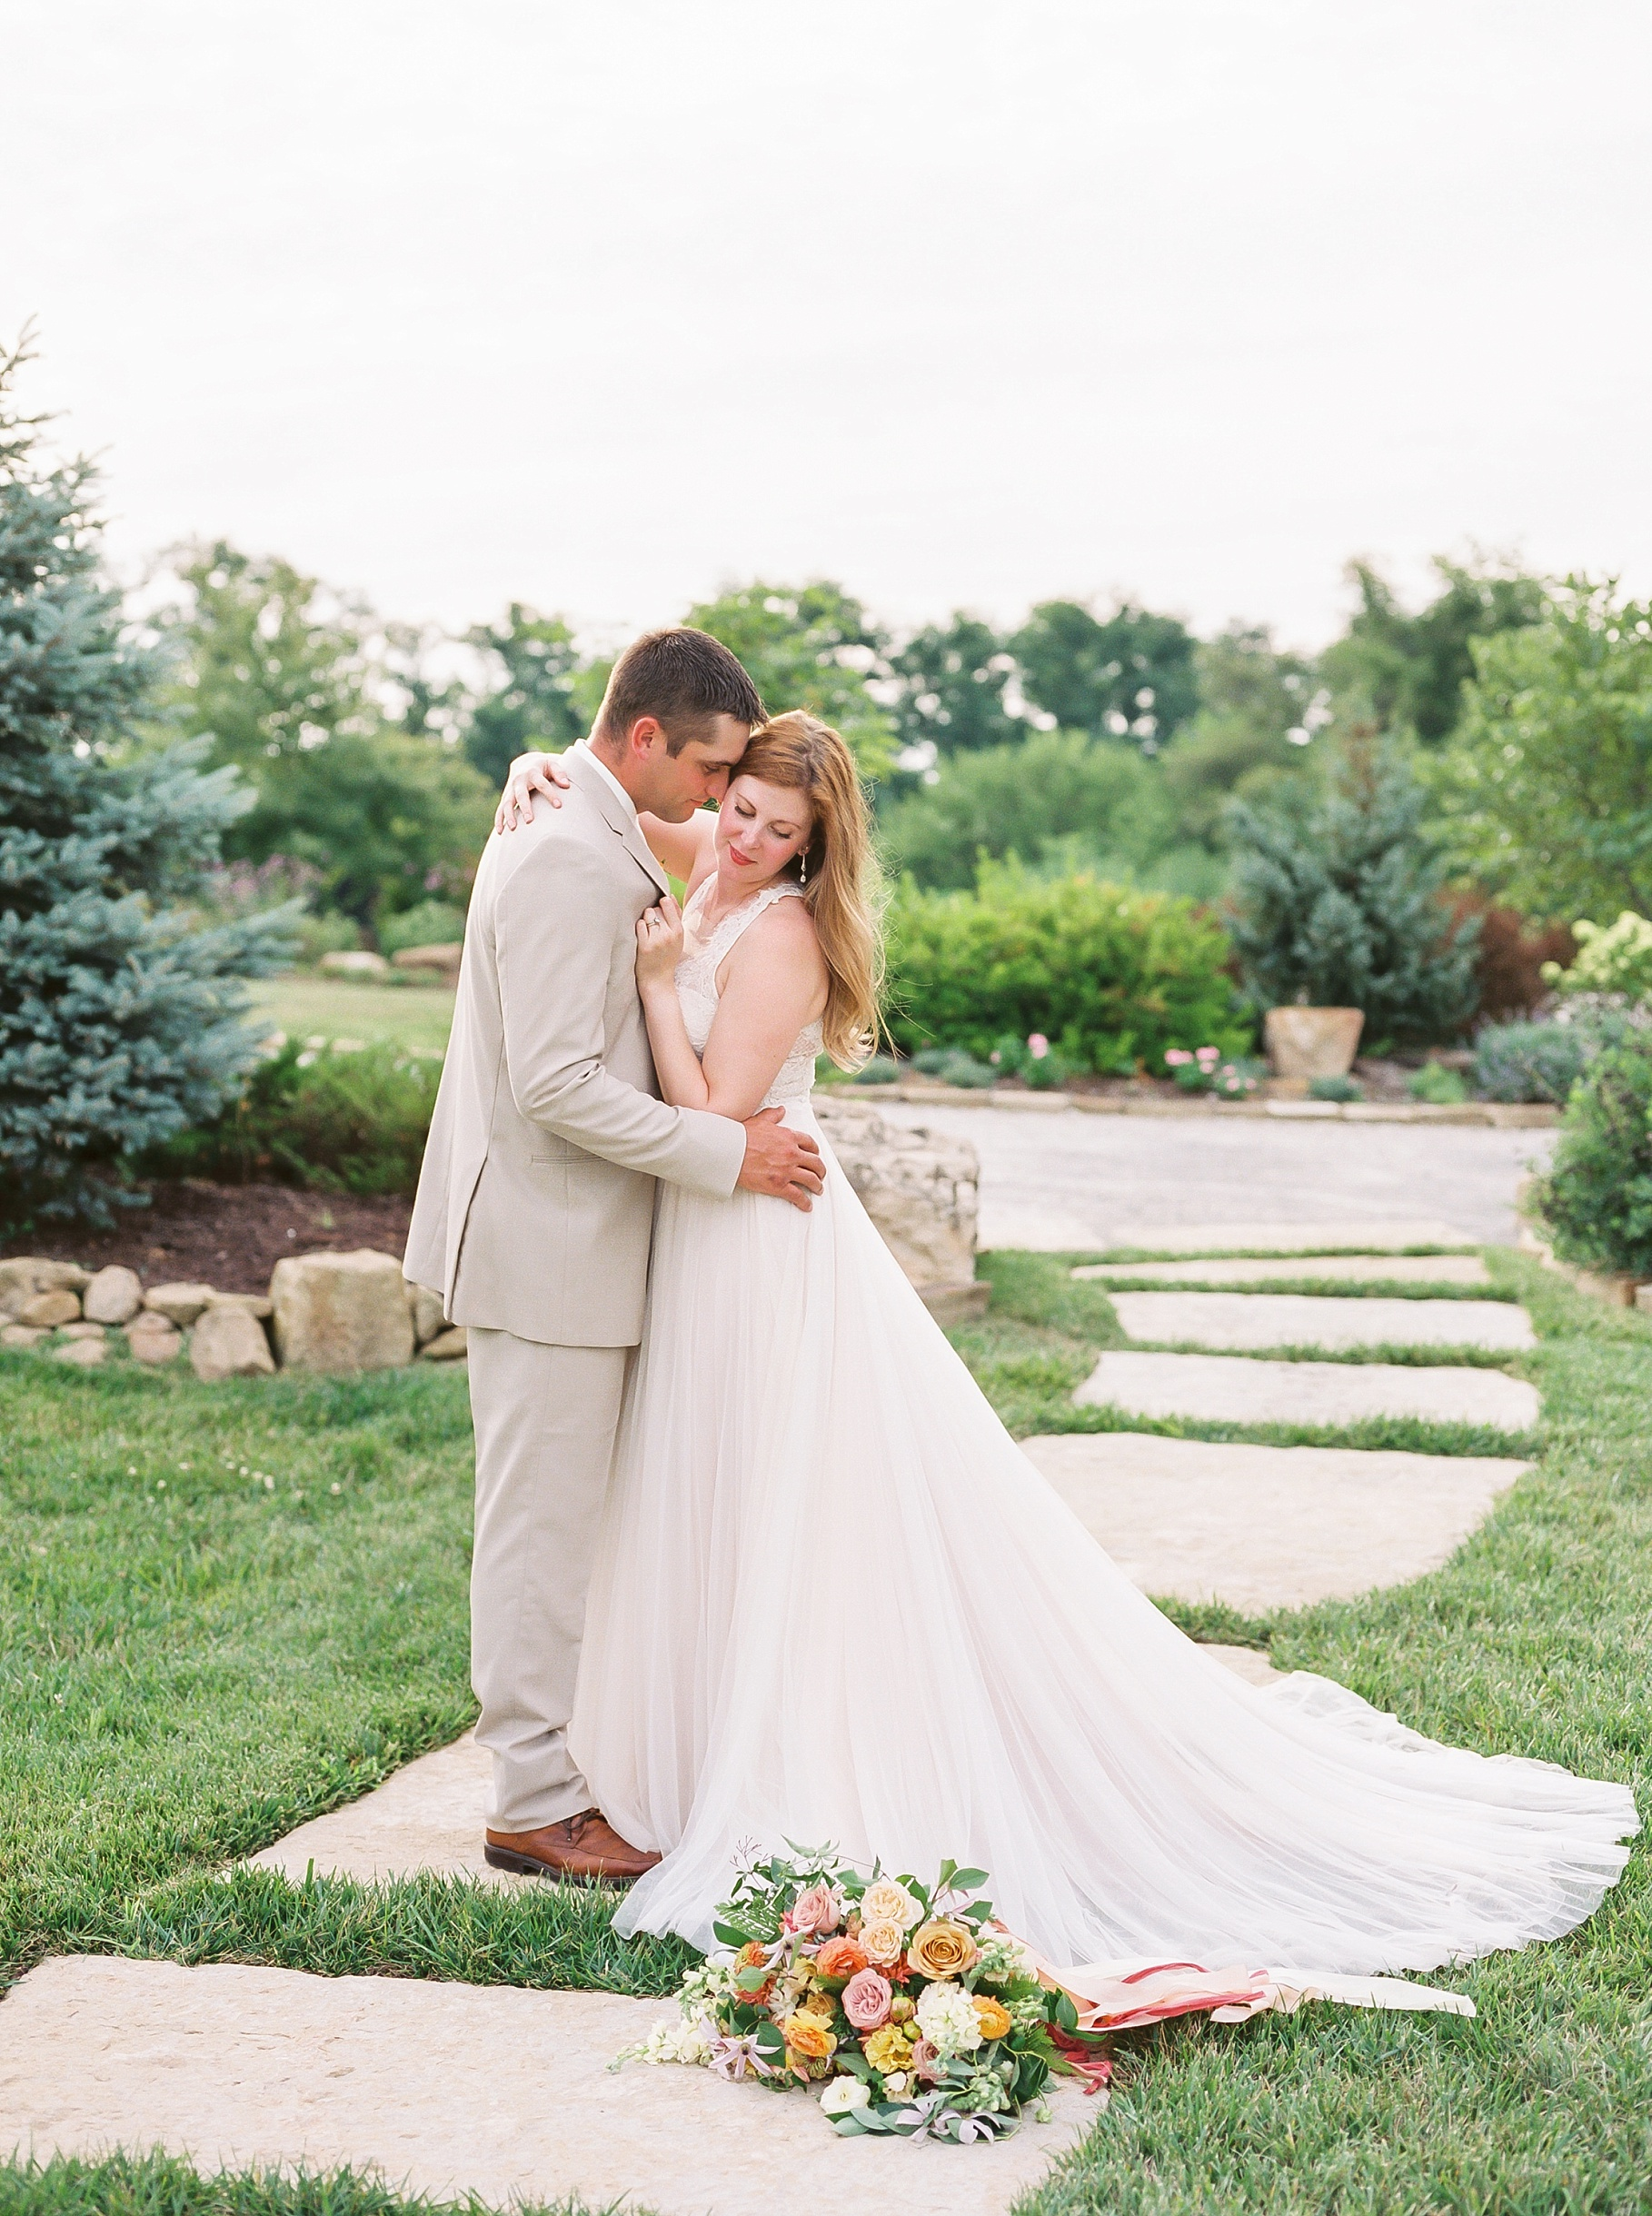 Late Summer Wedding With Pastel Toned Soiree at Blue Bell Farm by Kelsi Kliethermes Photography Best Columbia Missouri Wedding Photographer_0093.jpg